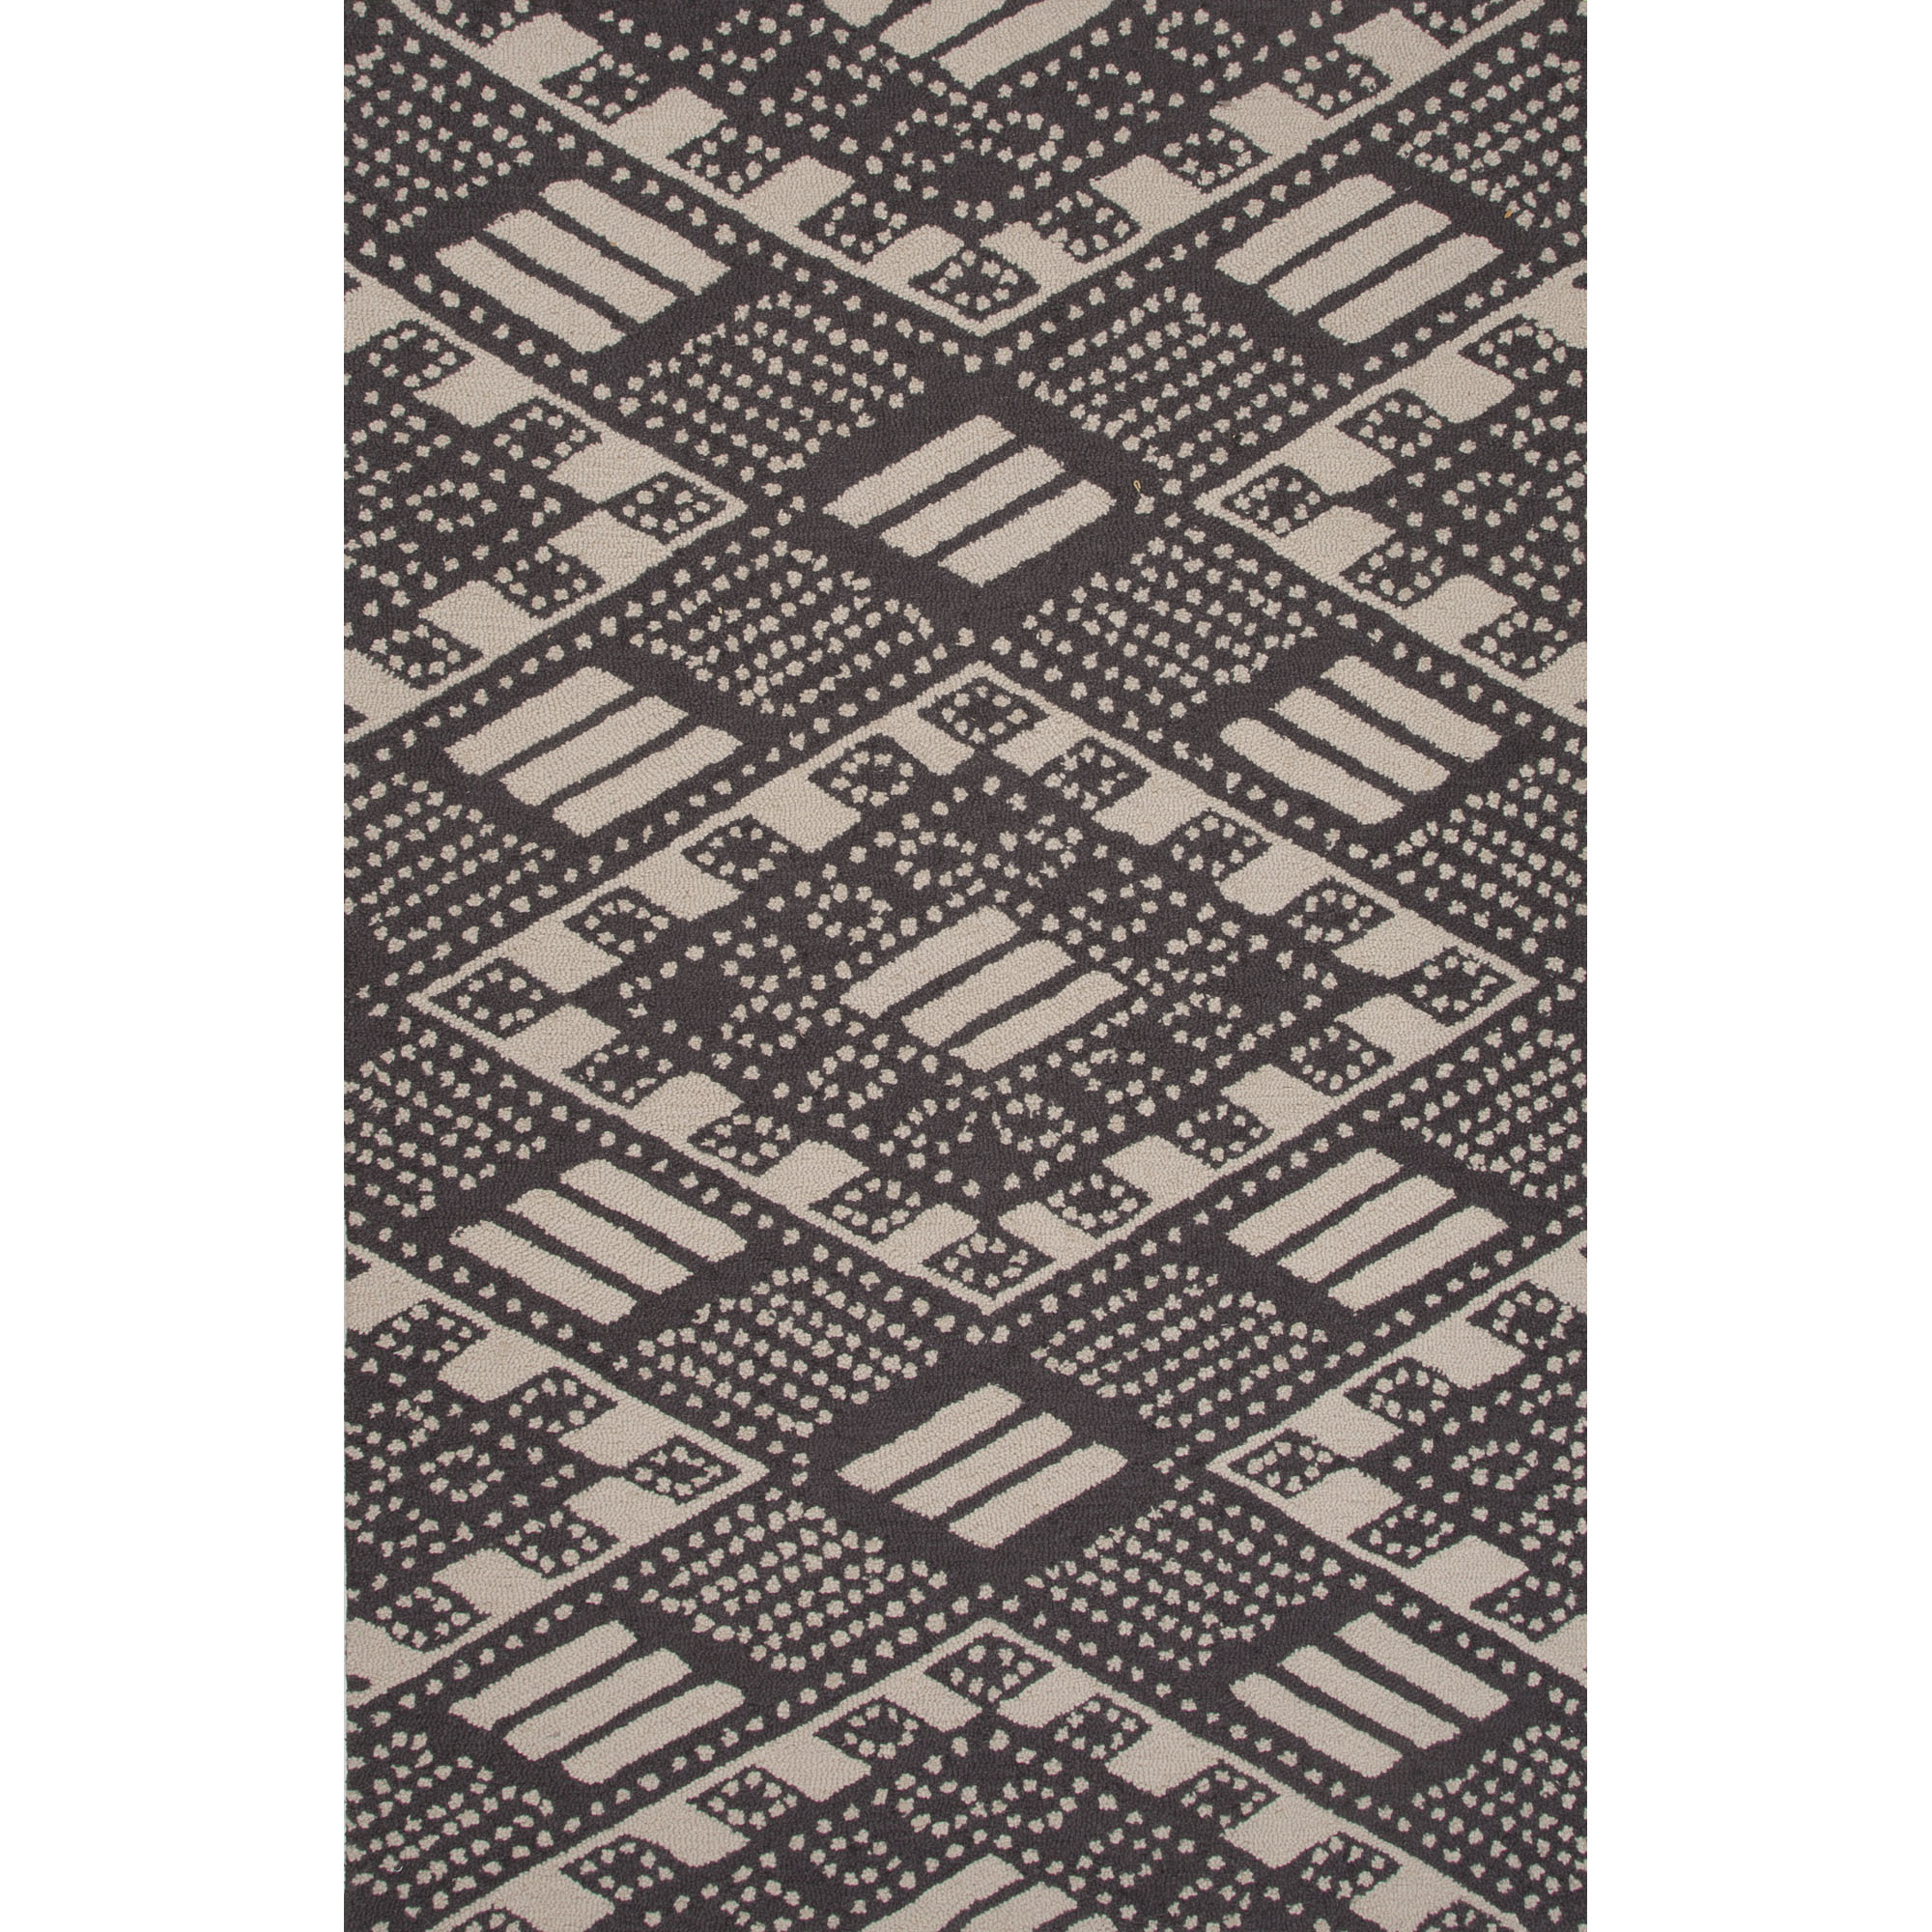 JAIPUR Rugs Traditions Made Modern Tufted 2 x 3 Rug - Item Number: RUG122214